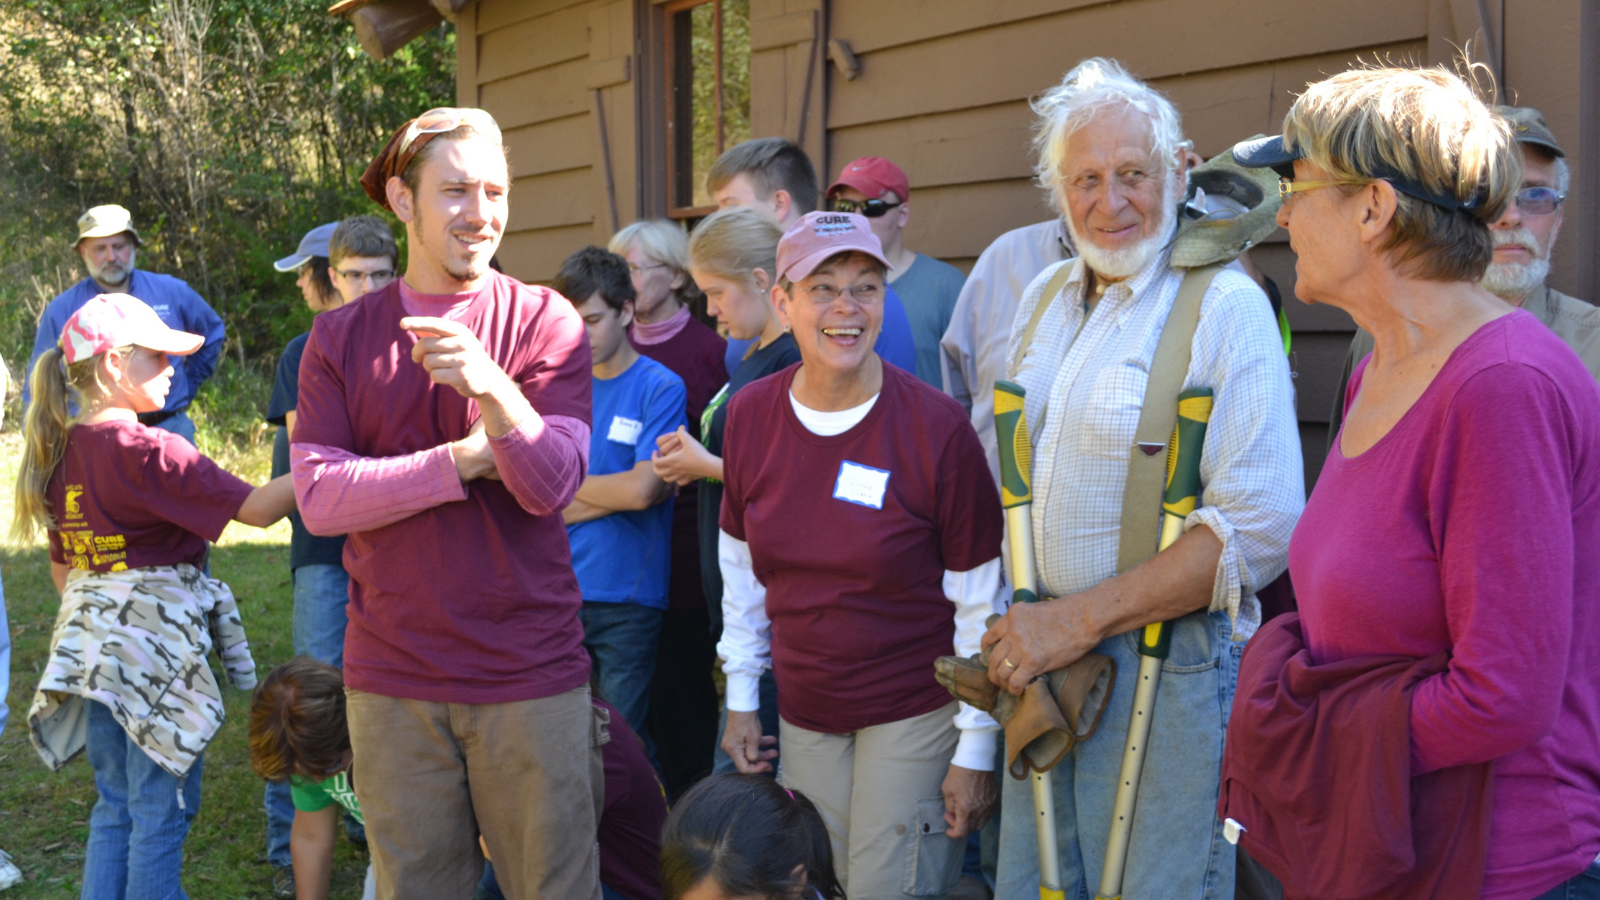 CURE members gathered at a previous National Public Lands Day event